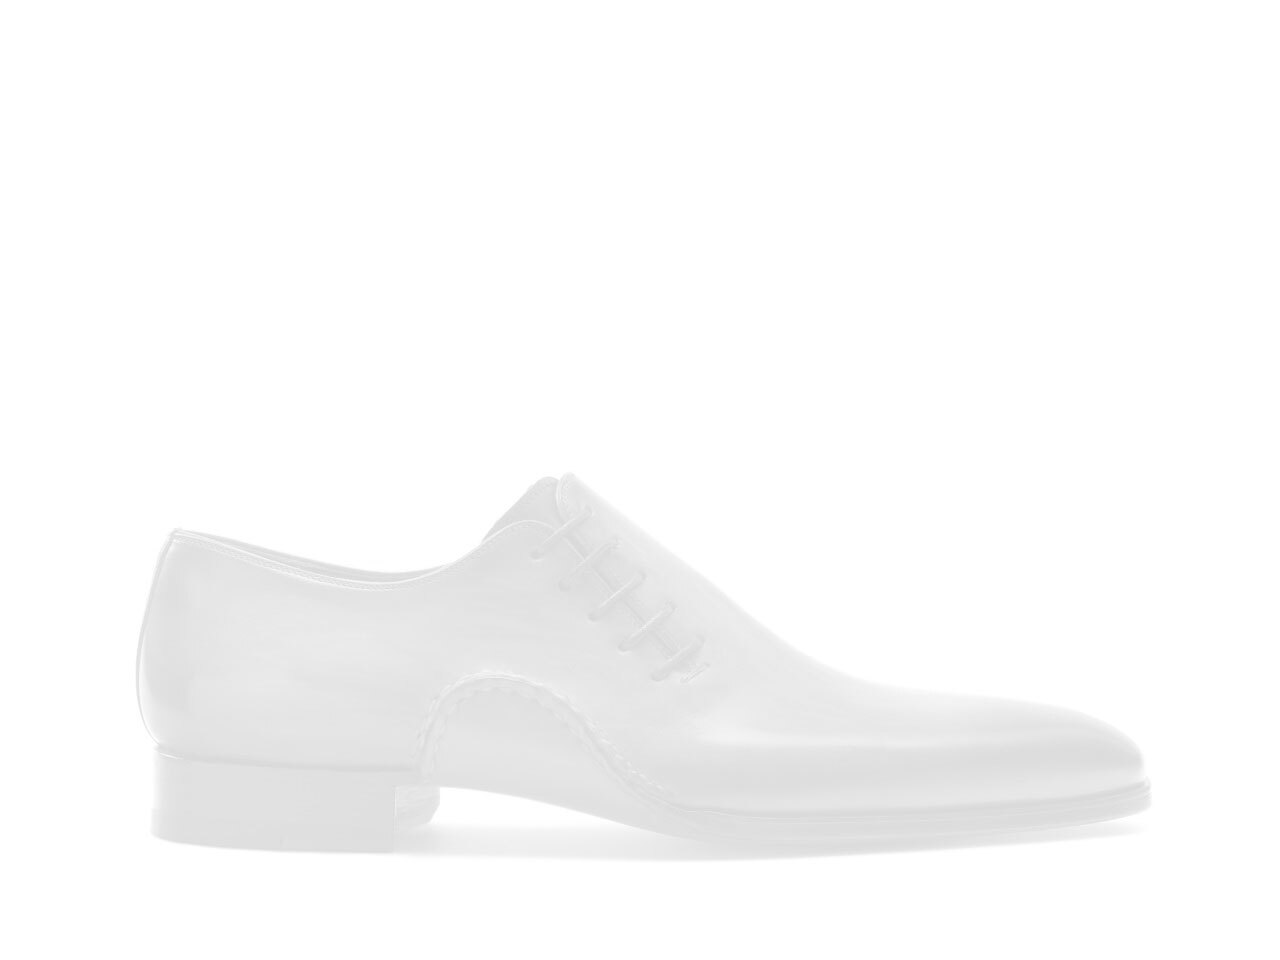 Side view of the Magnanni Ibiza Cuero Men's Sneakers